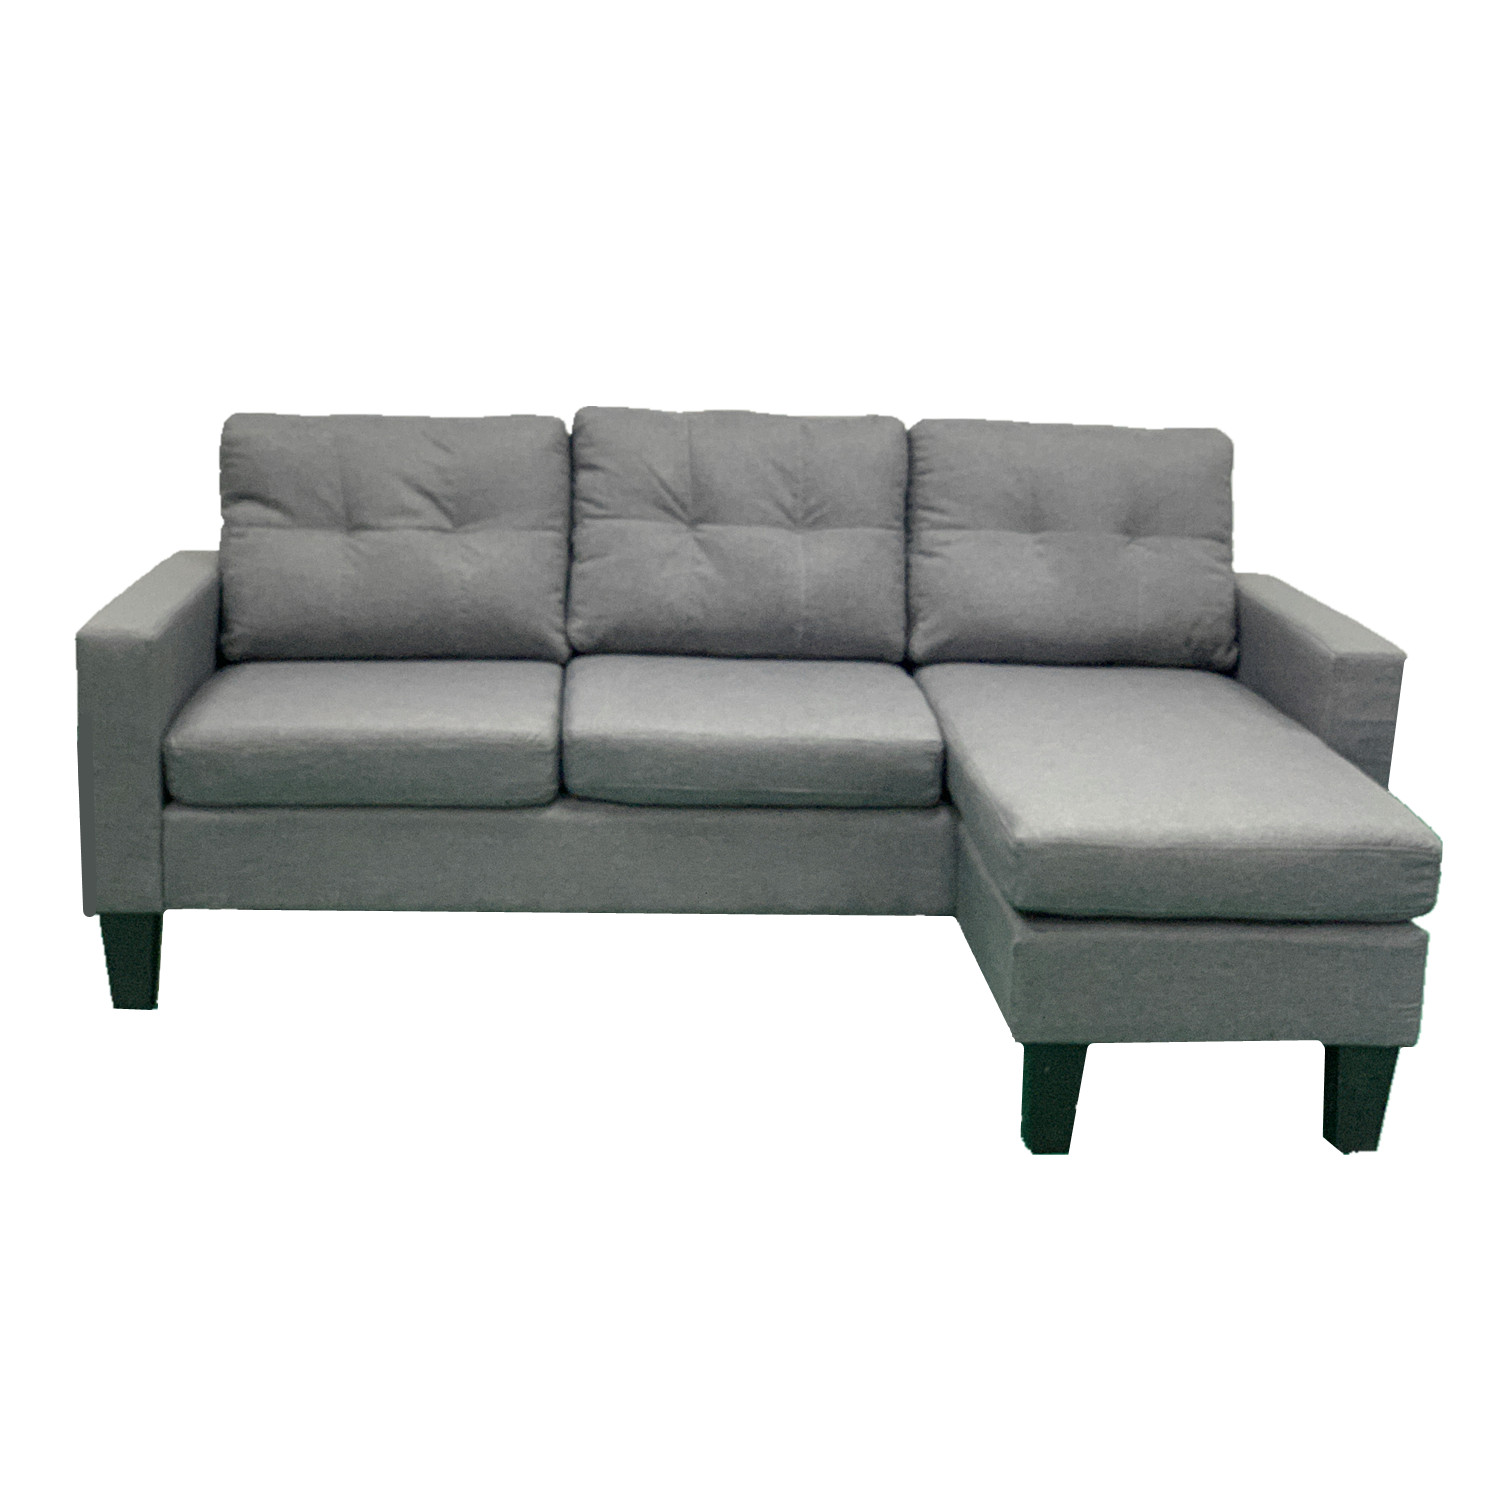 Dark Grey Cushioned Convertible Sofa Bed With Chaise Living Room Couch BT1709DG